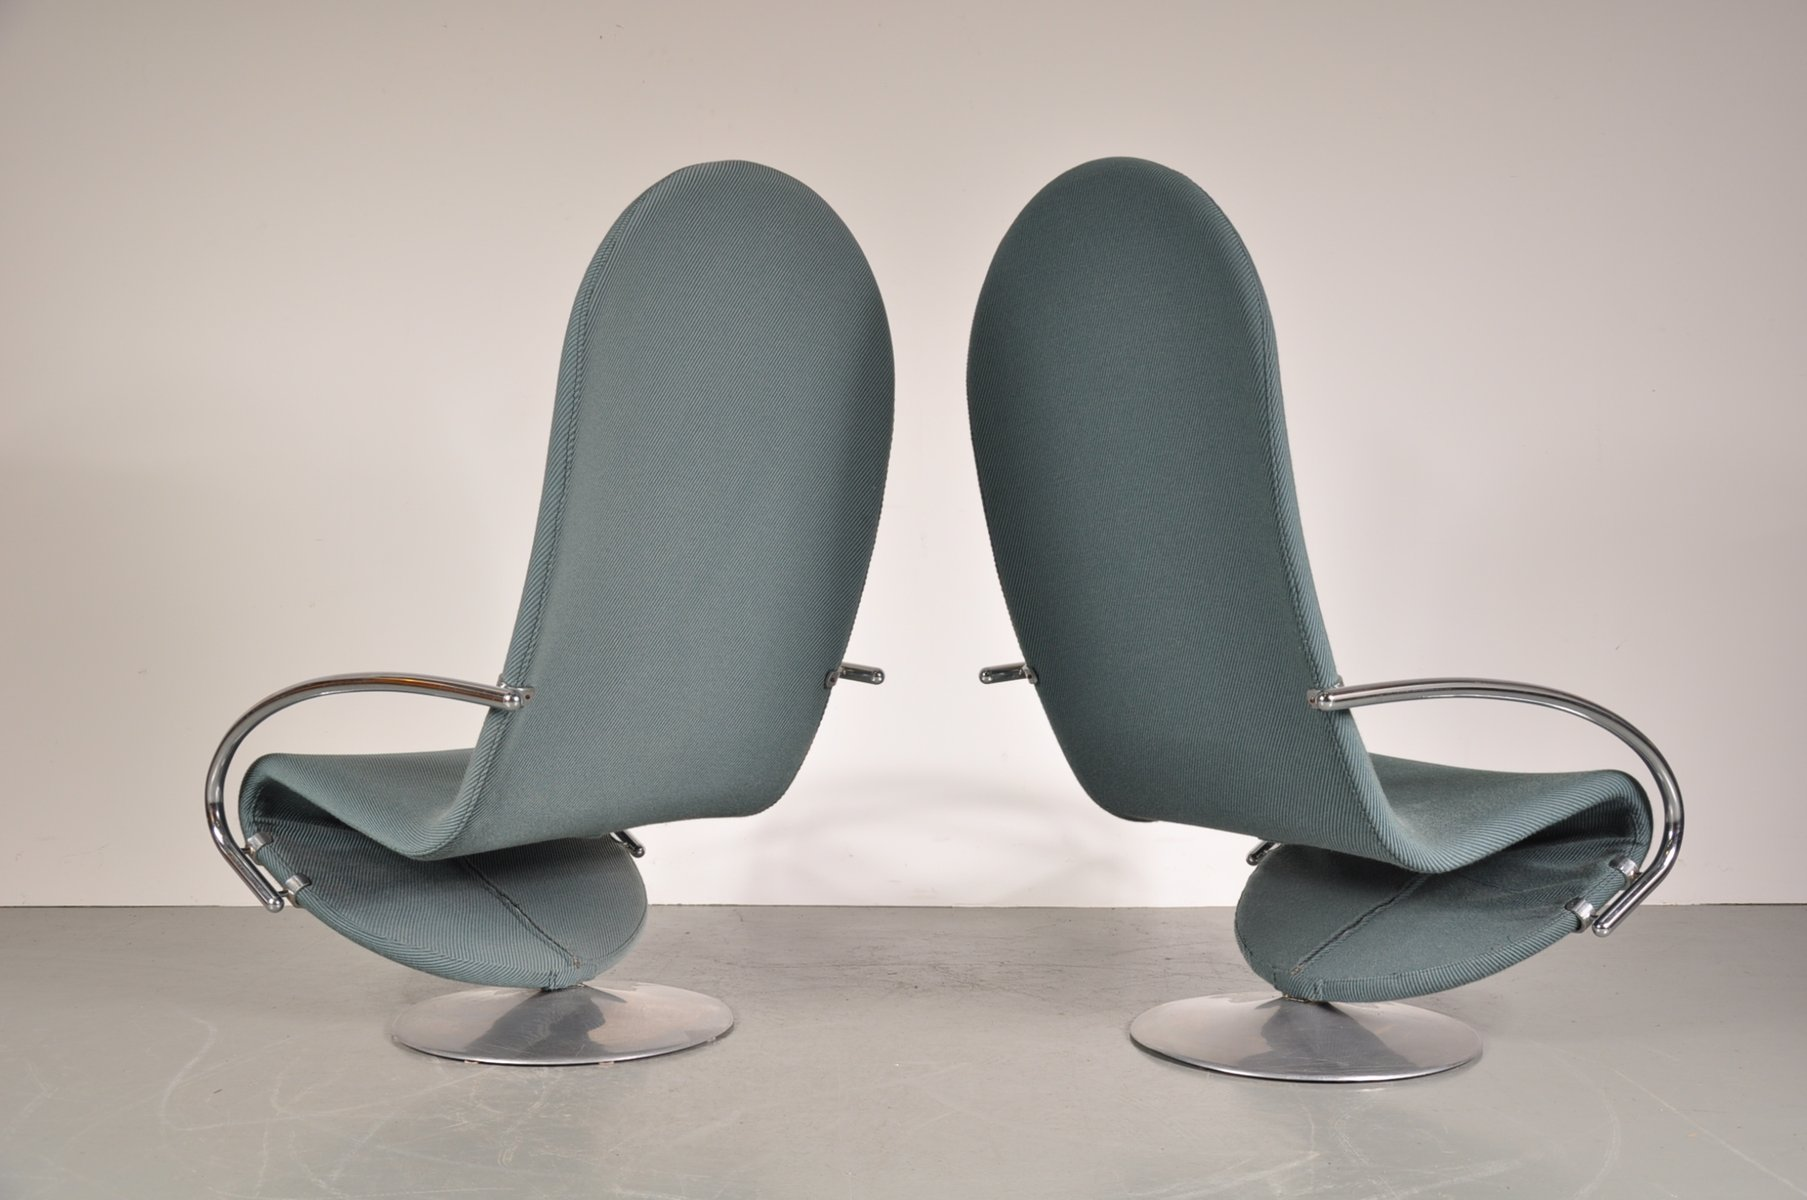 1 2 3 sessel von verner panton f r fritz hansen 1970er 2er set bei pamono kaufen. Black Bedroom Furniture Sets. Home Design Ideas